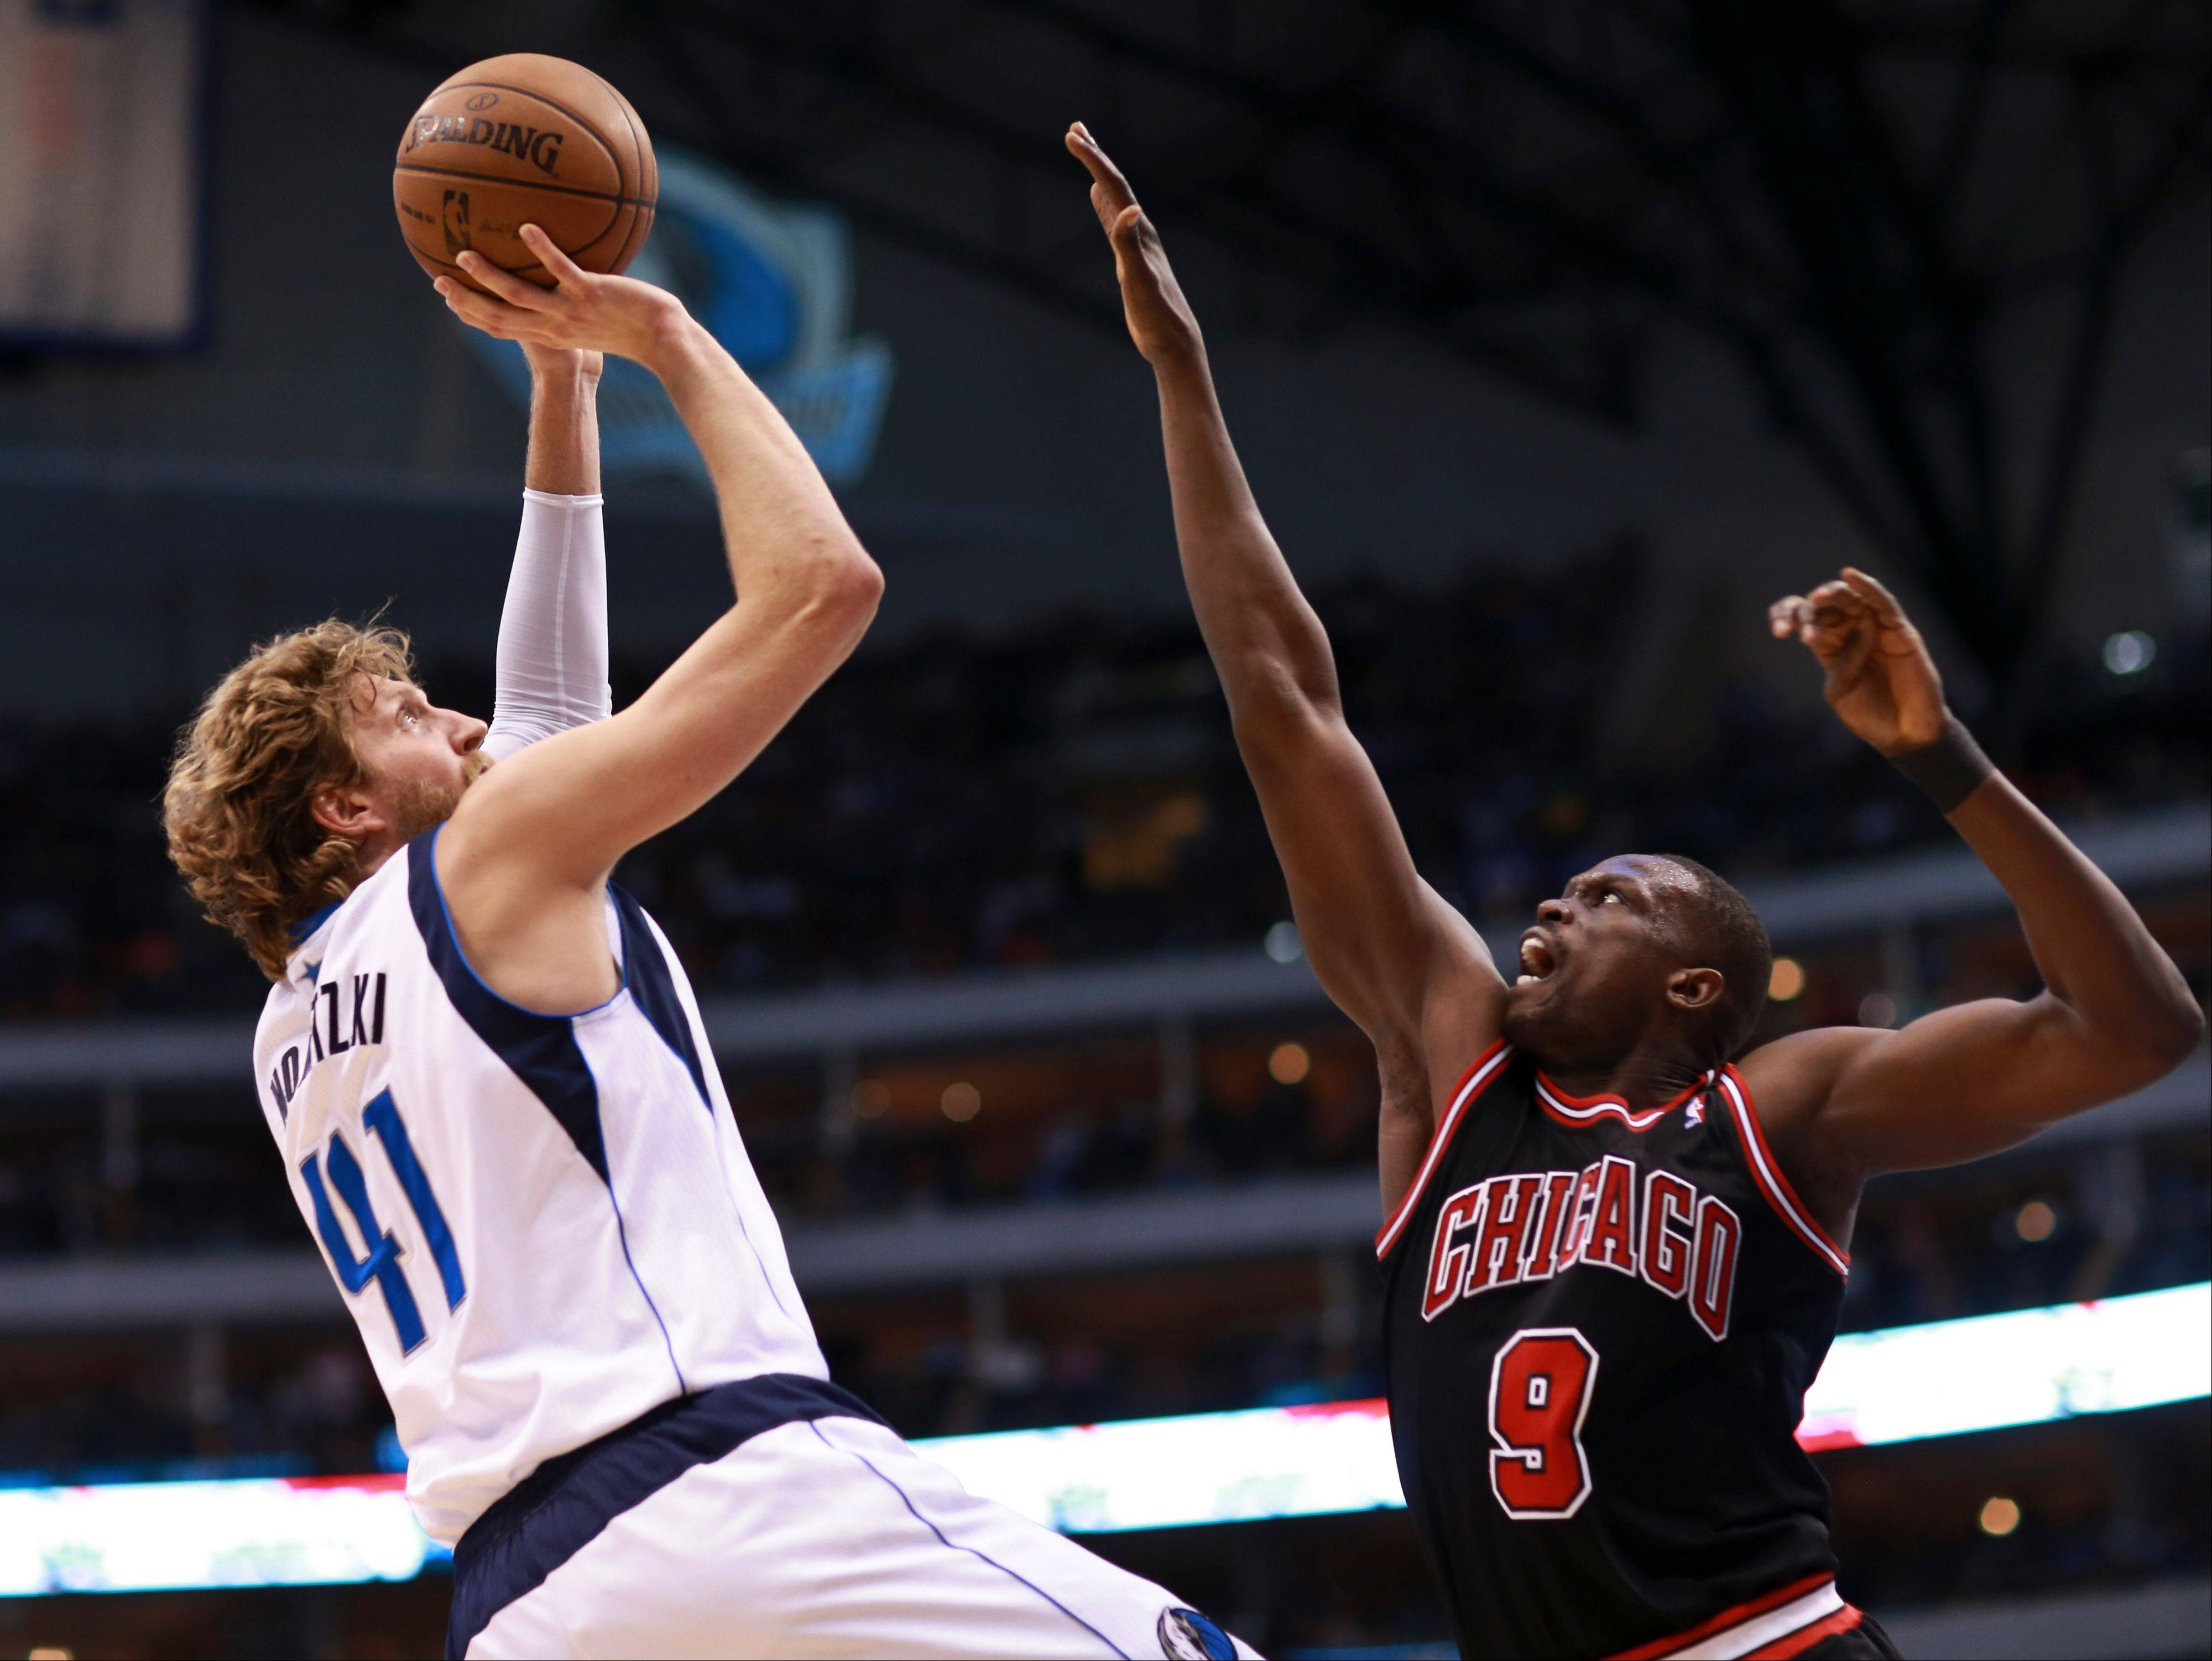 Dirk Nowitzki was virtually unstoppable Saturday, finishing with 35 points on 14-of-17-shooting. His 3-pointer with 2.9 seconds left lifted the host Mavericks to a 100-98 win over the Bulls.